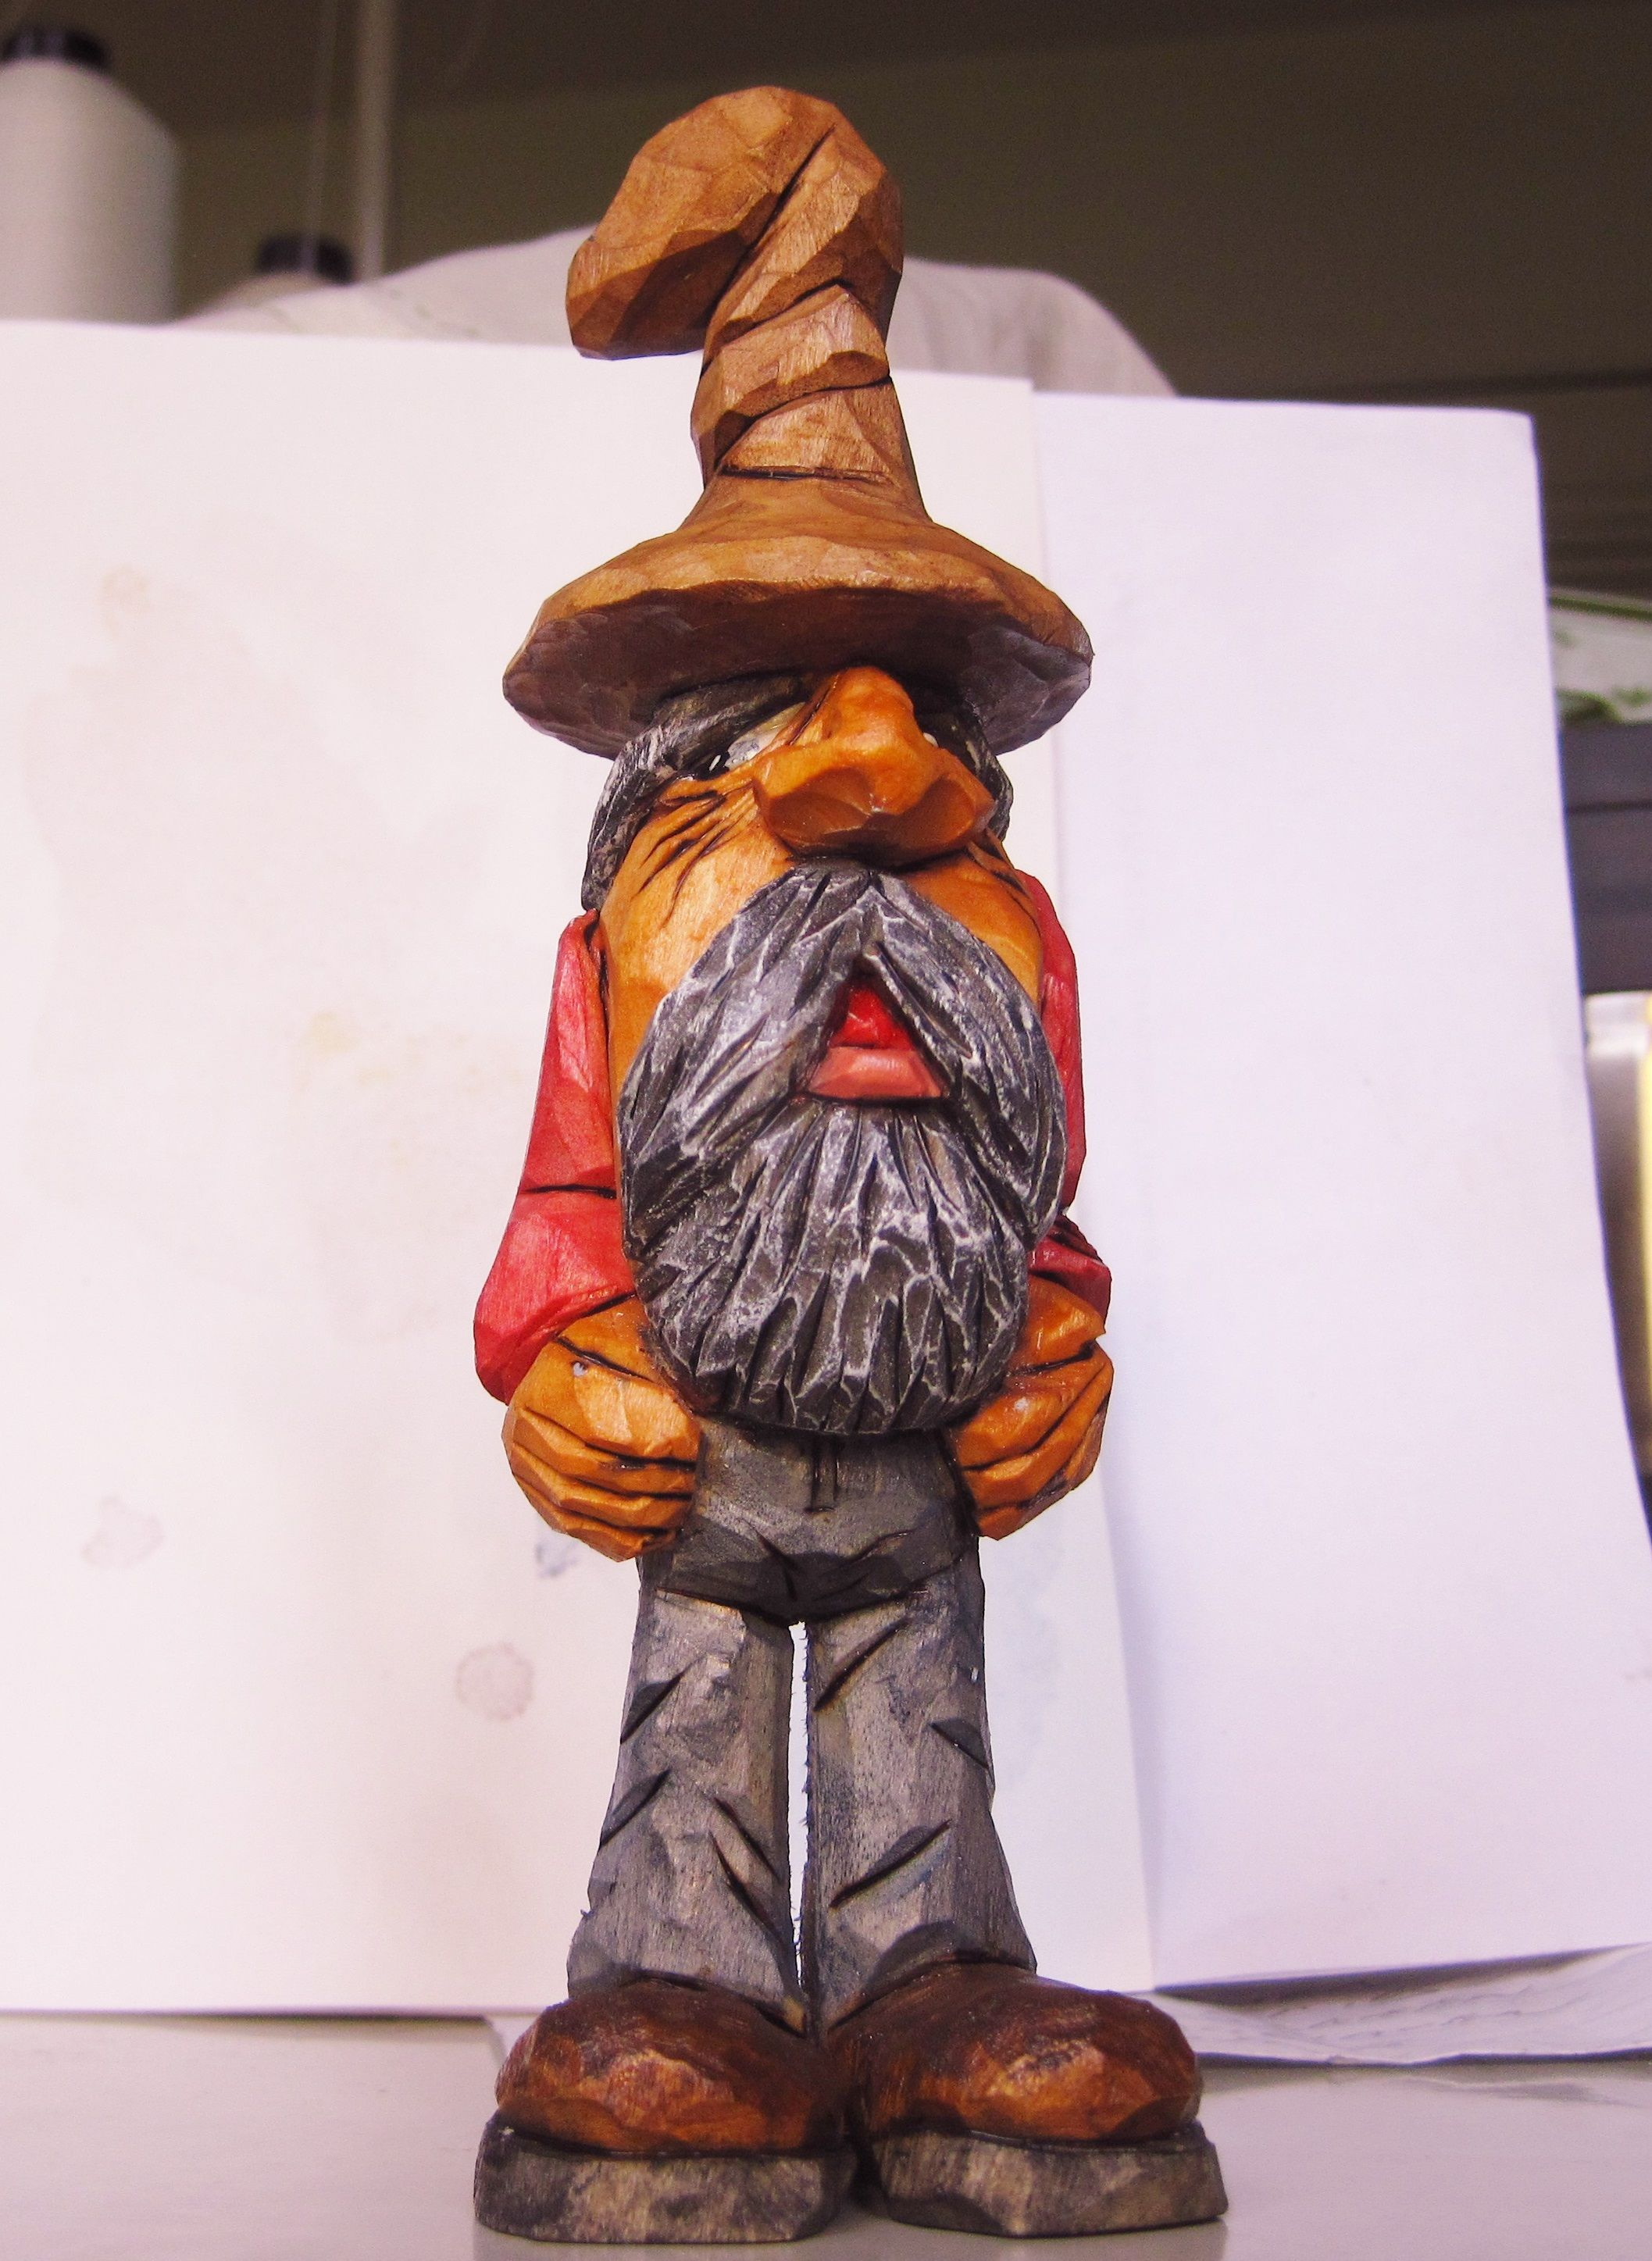 Woodcarving caricature woodcarving caricatures wood carving